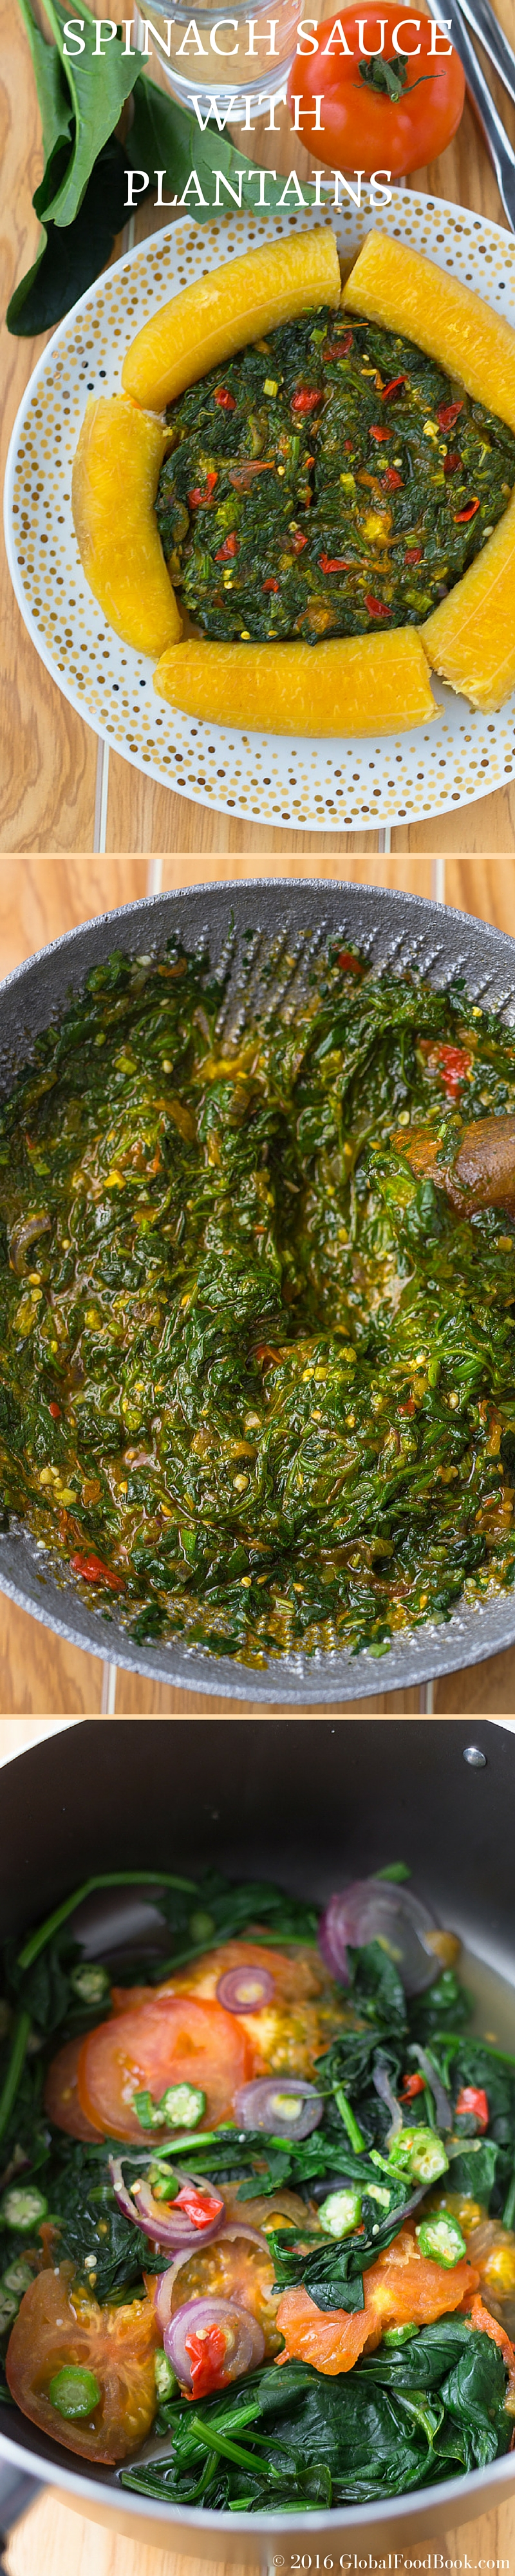 SPINACH SAUCE WITH PLANTAINS